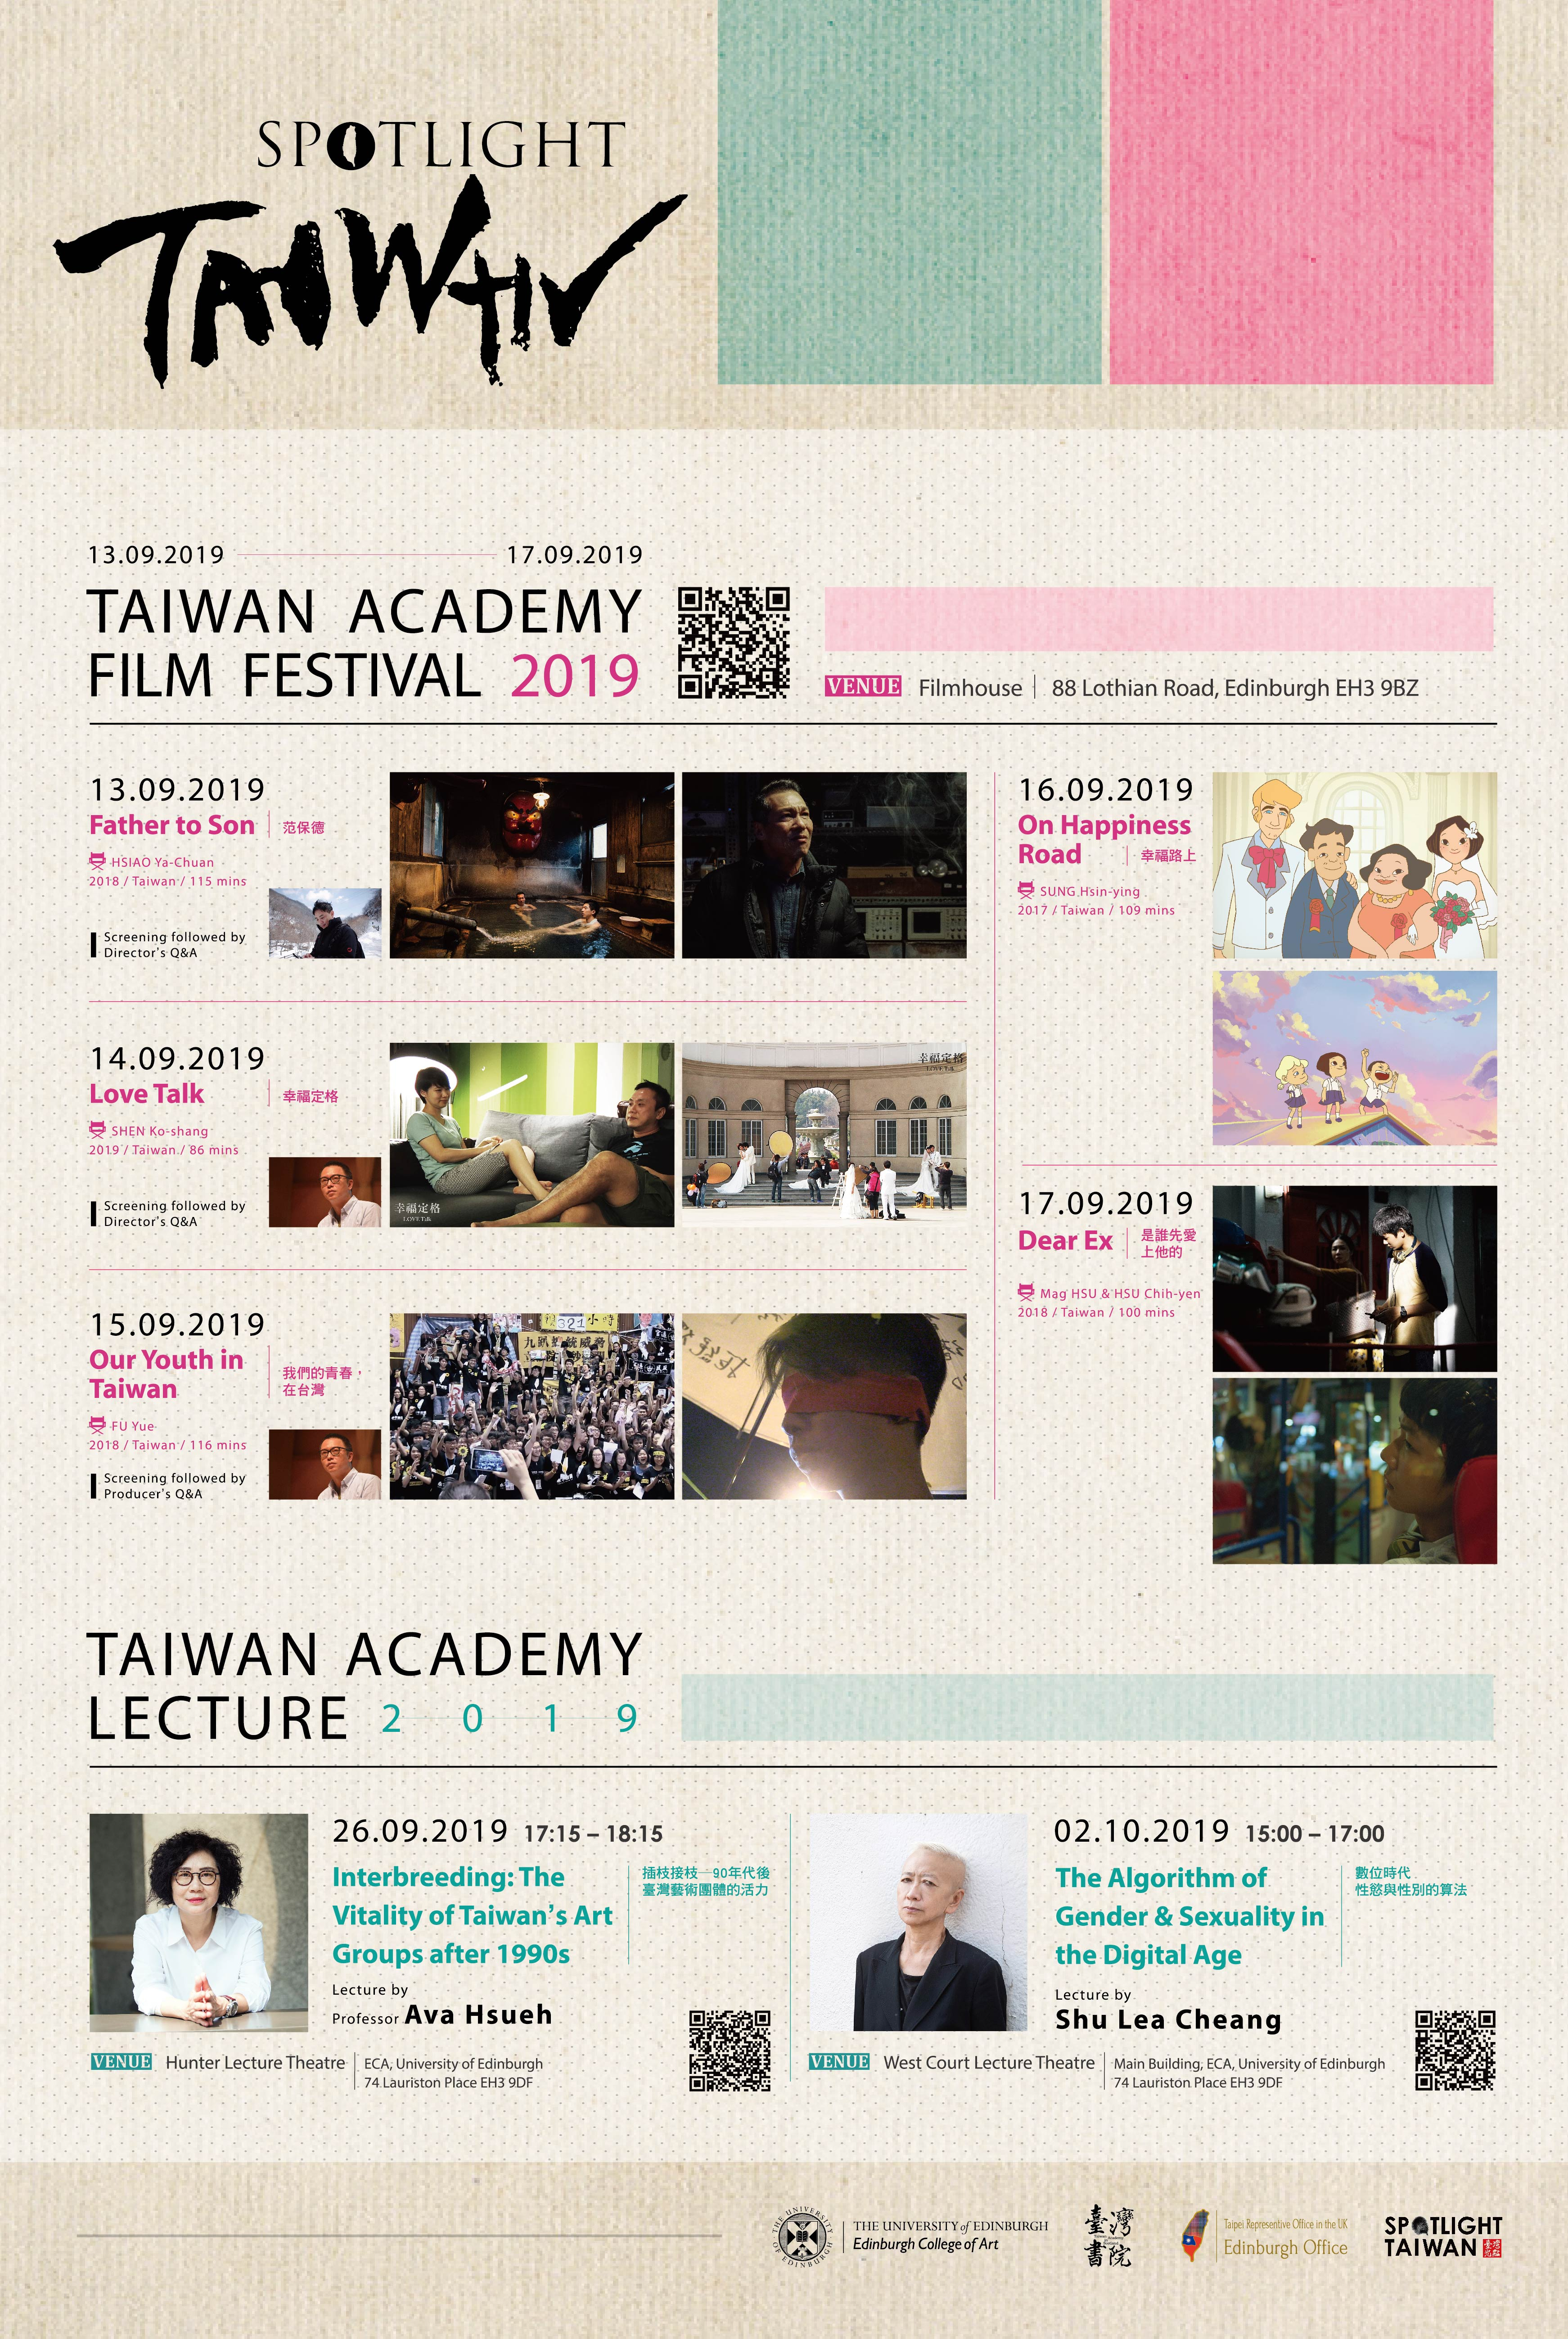 University of Edinburgh to host Taiwanese films, lectures